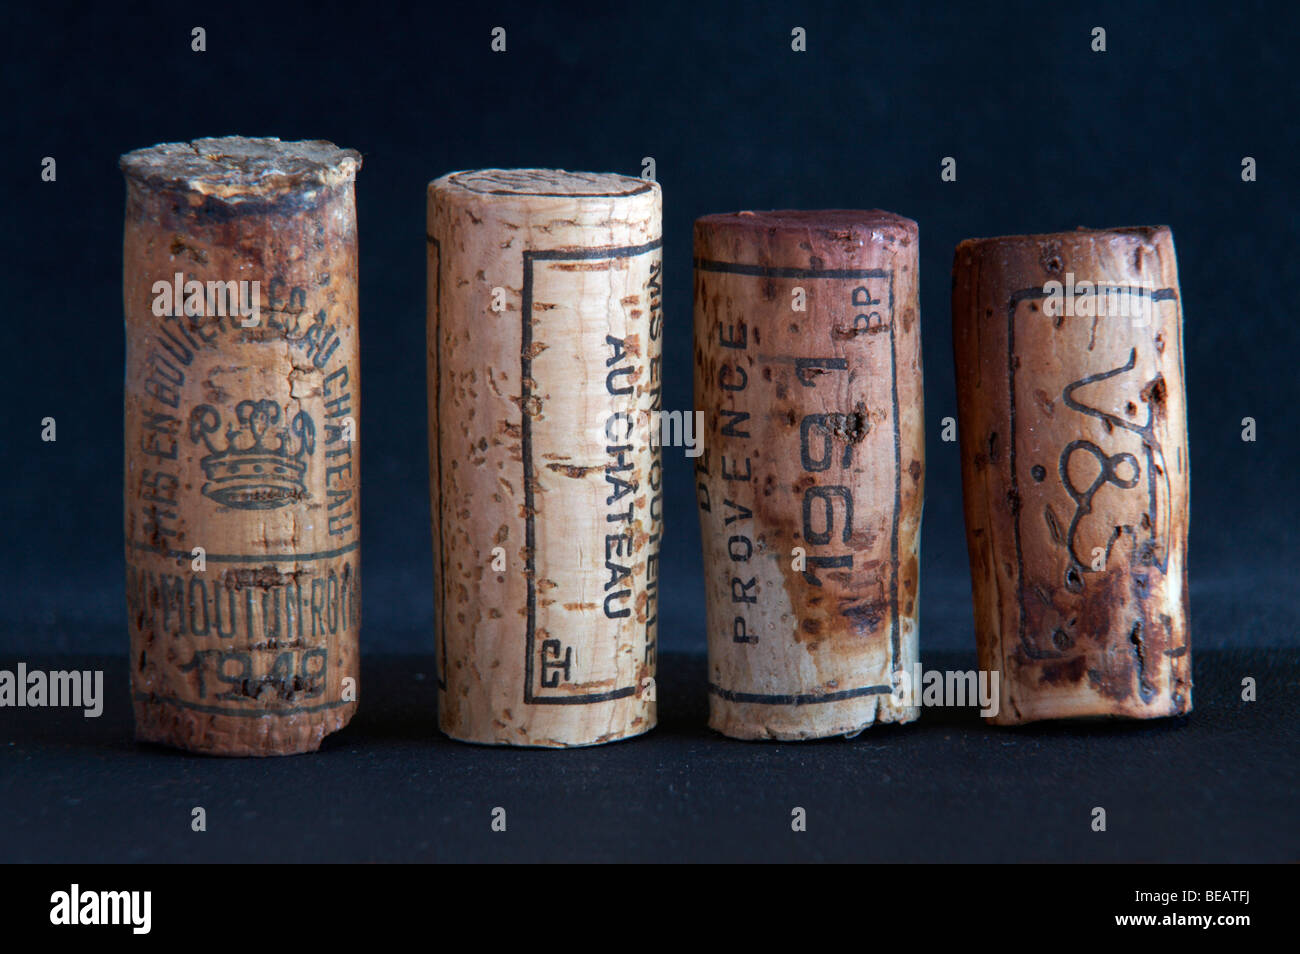 natural corks of different ages and lengths - Stock Image